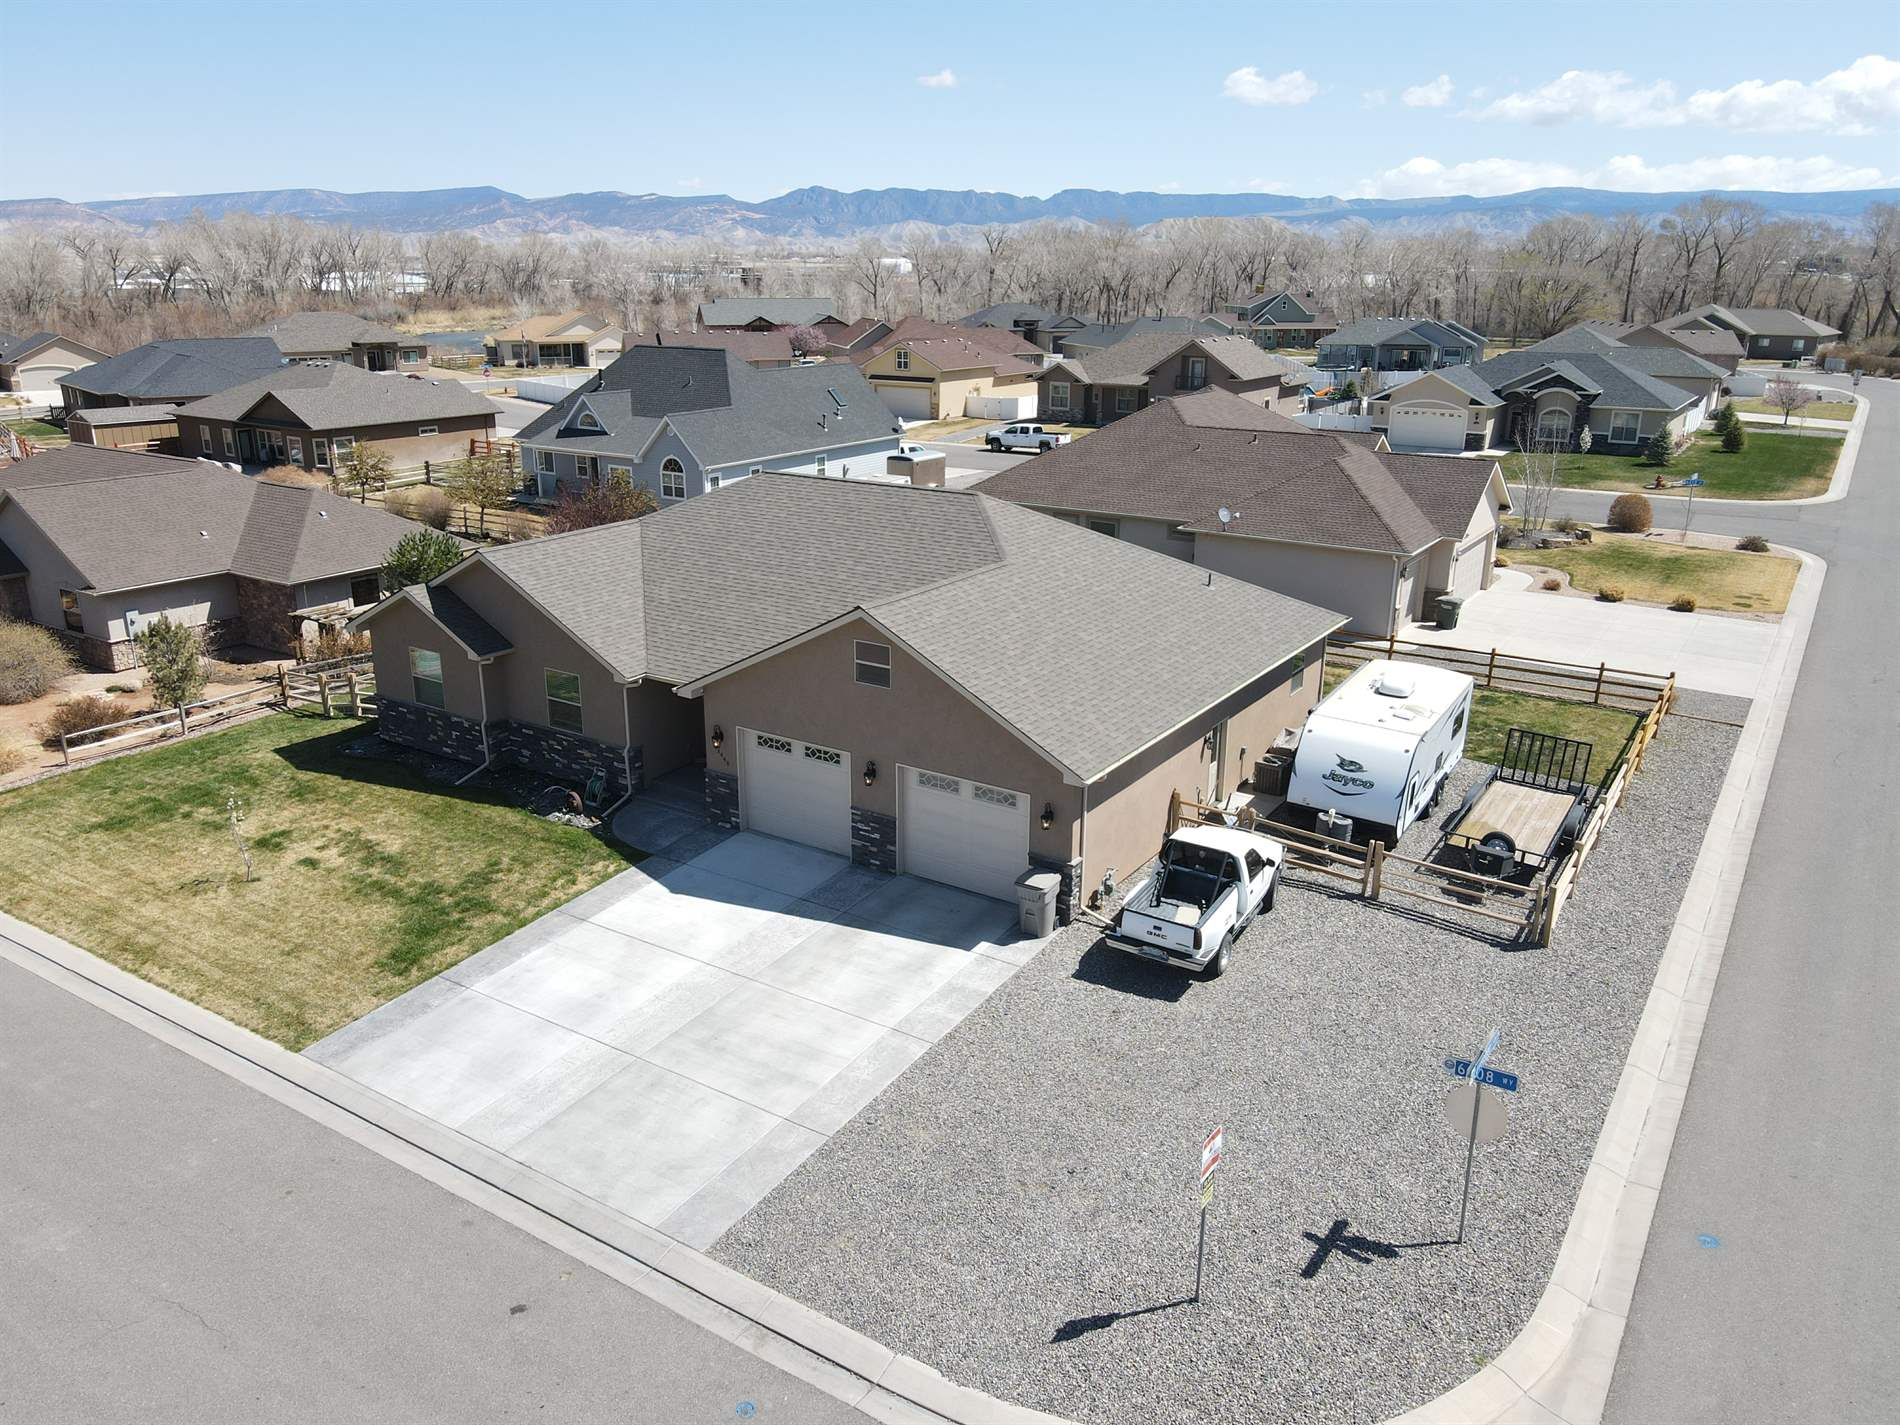 13448 6308 Way, Montrose, CO 81403